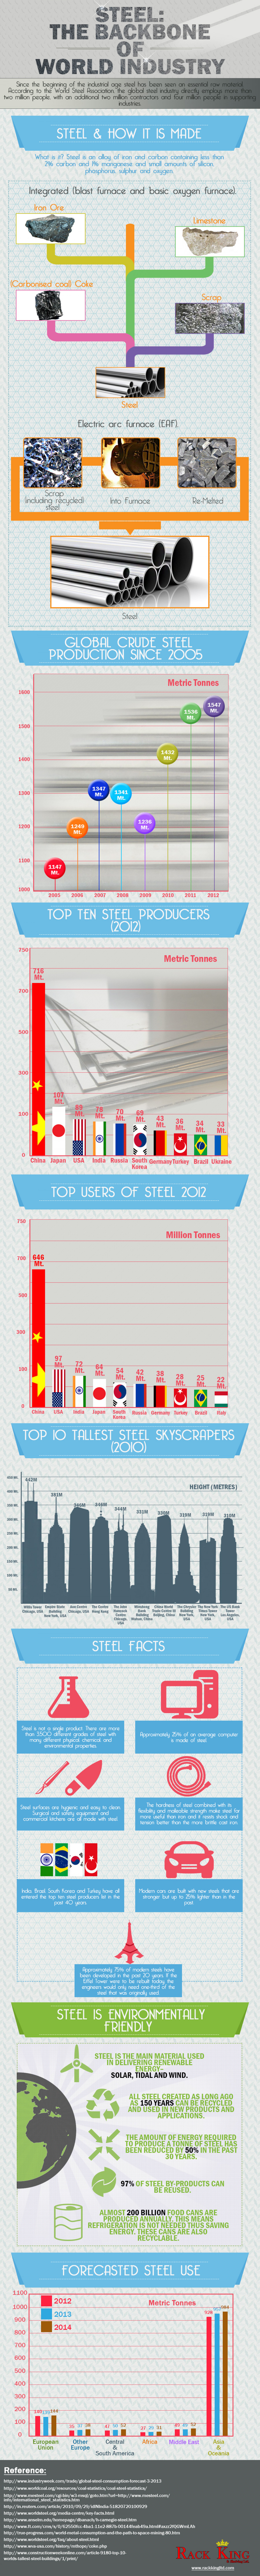 Steel The Backbone of the World Industry:An Infographic Infographic